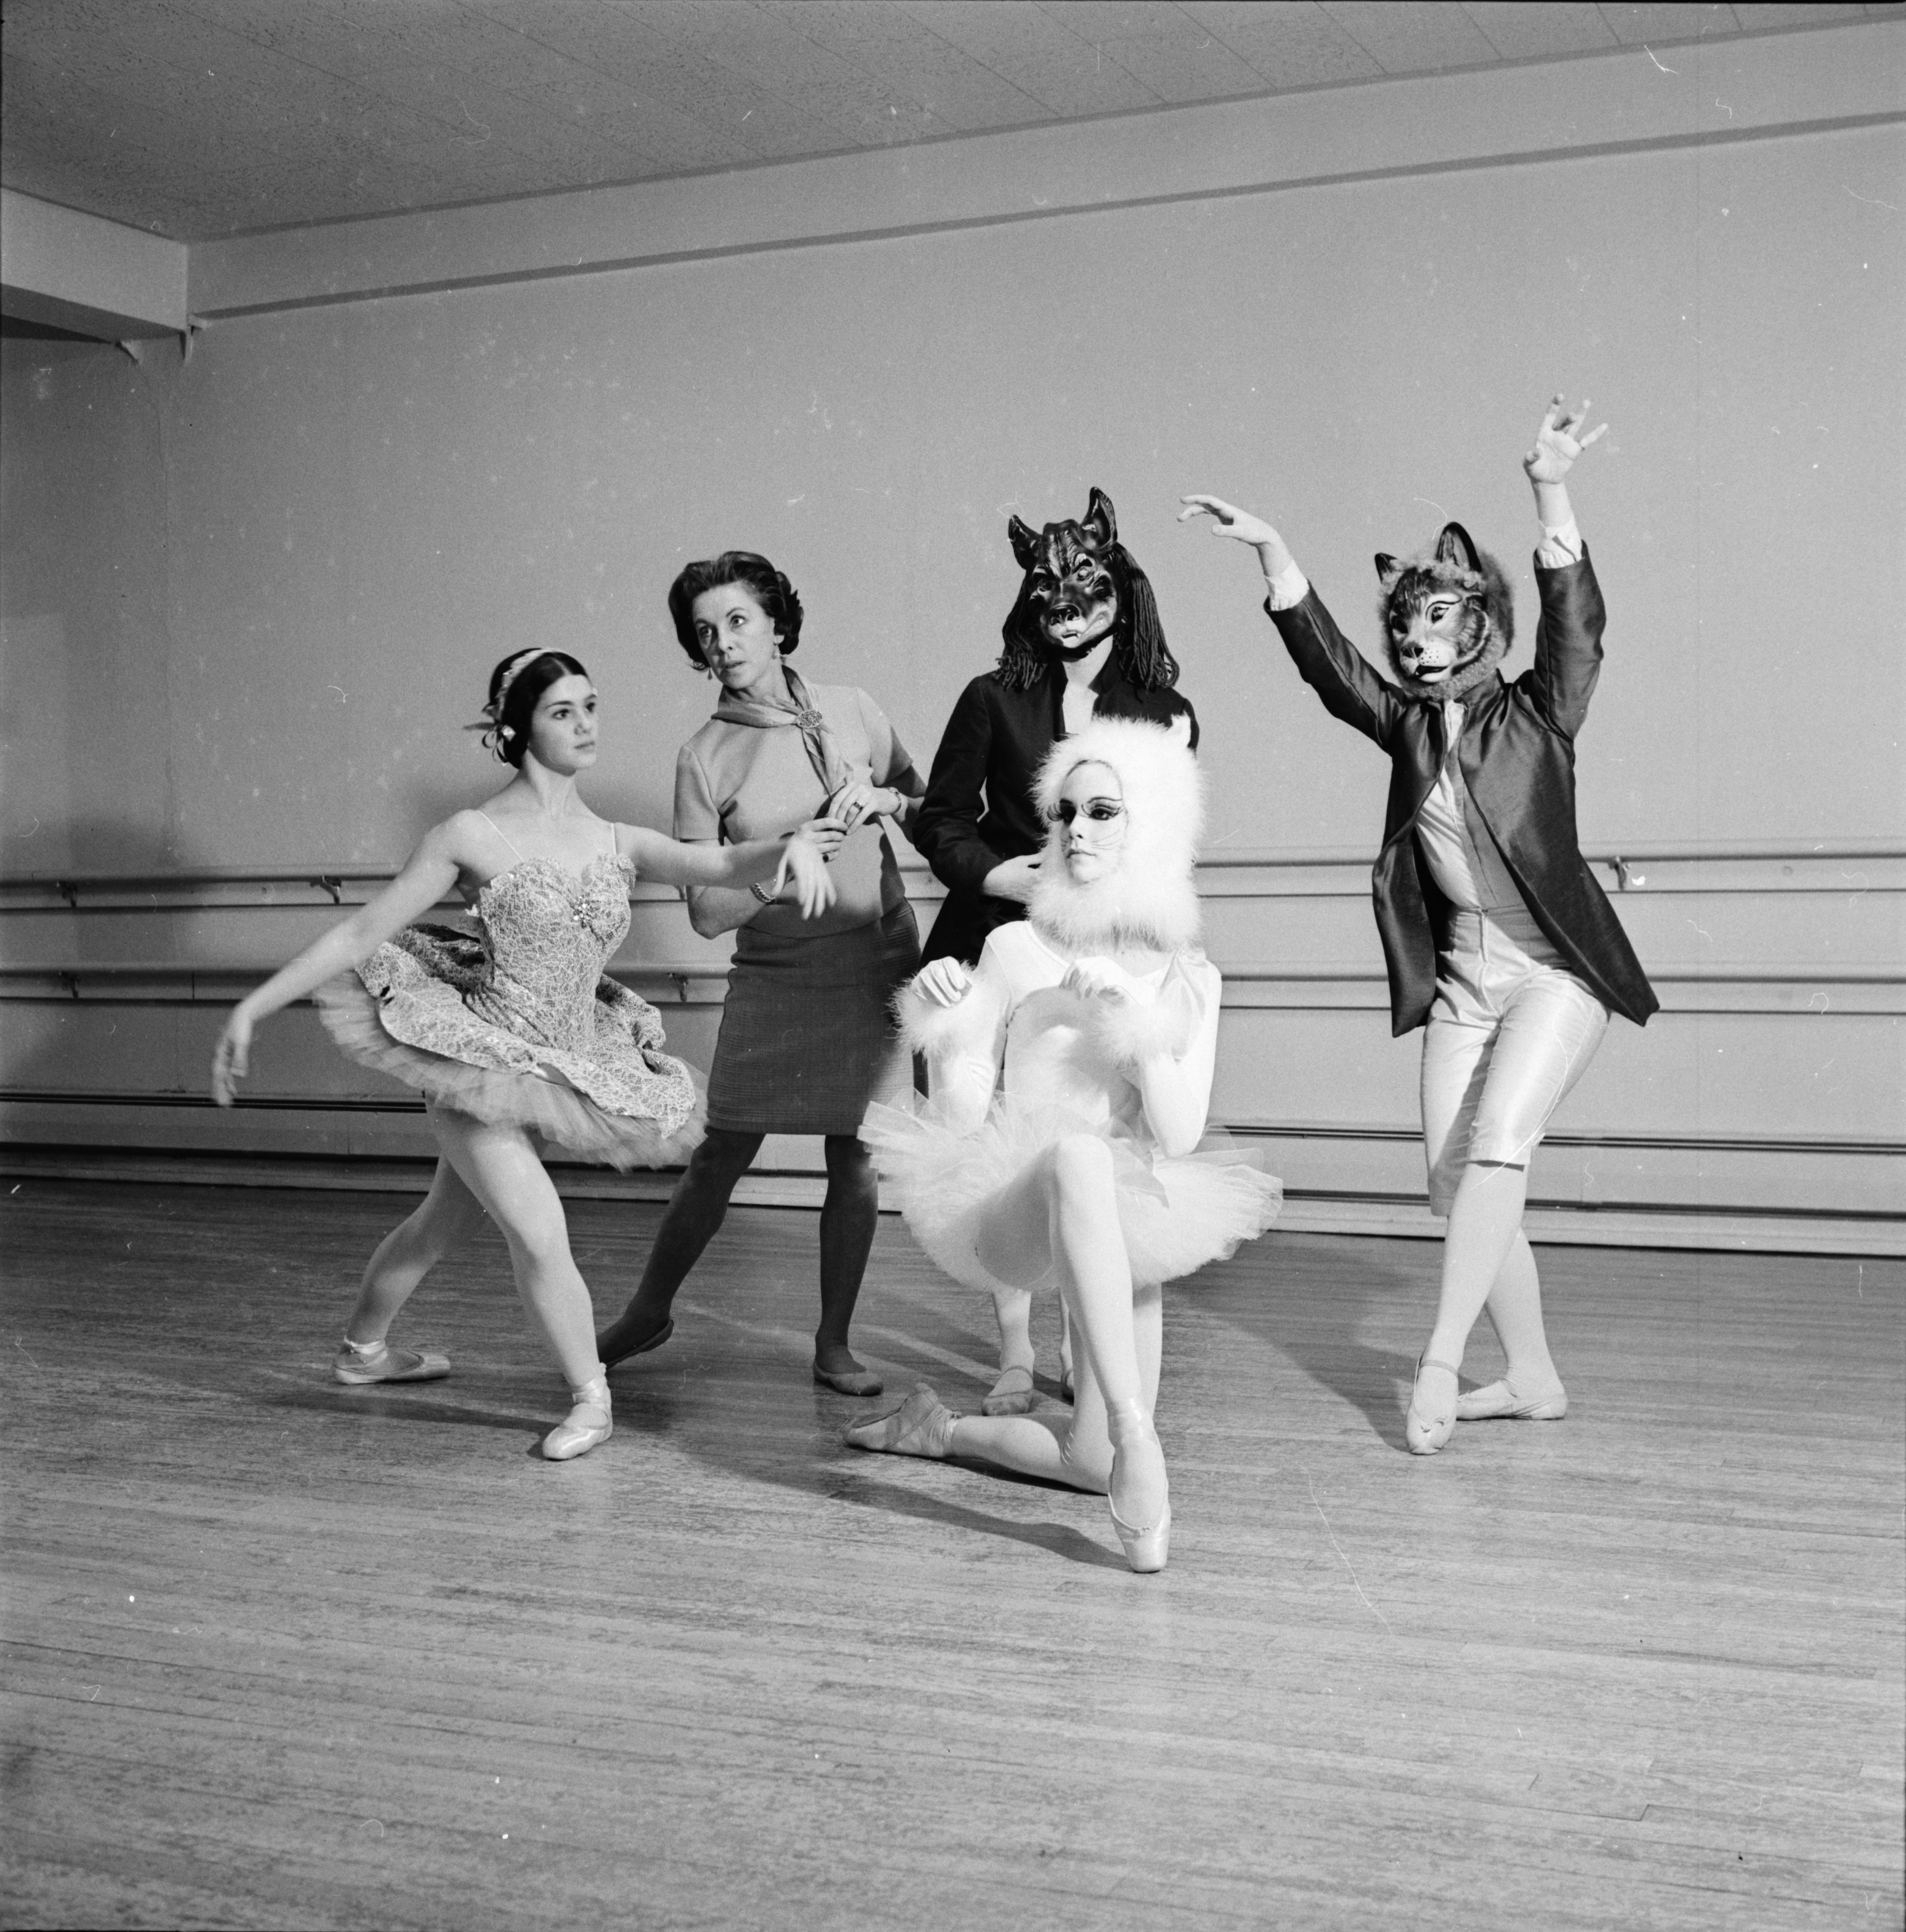 Ann Arbor Civic Ballet, March 1969 image